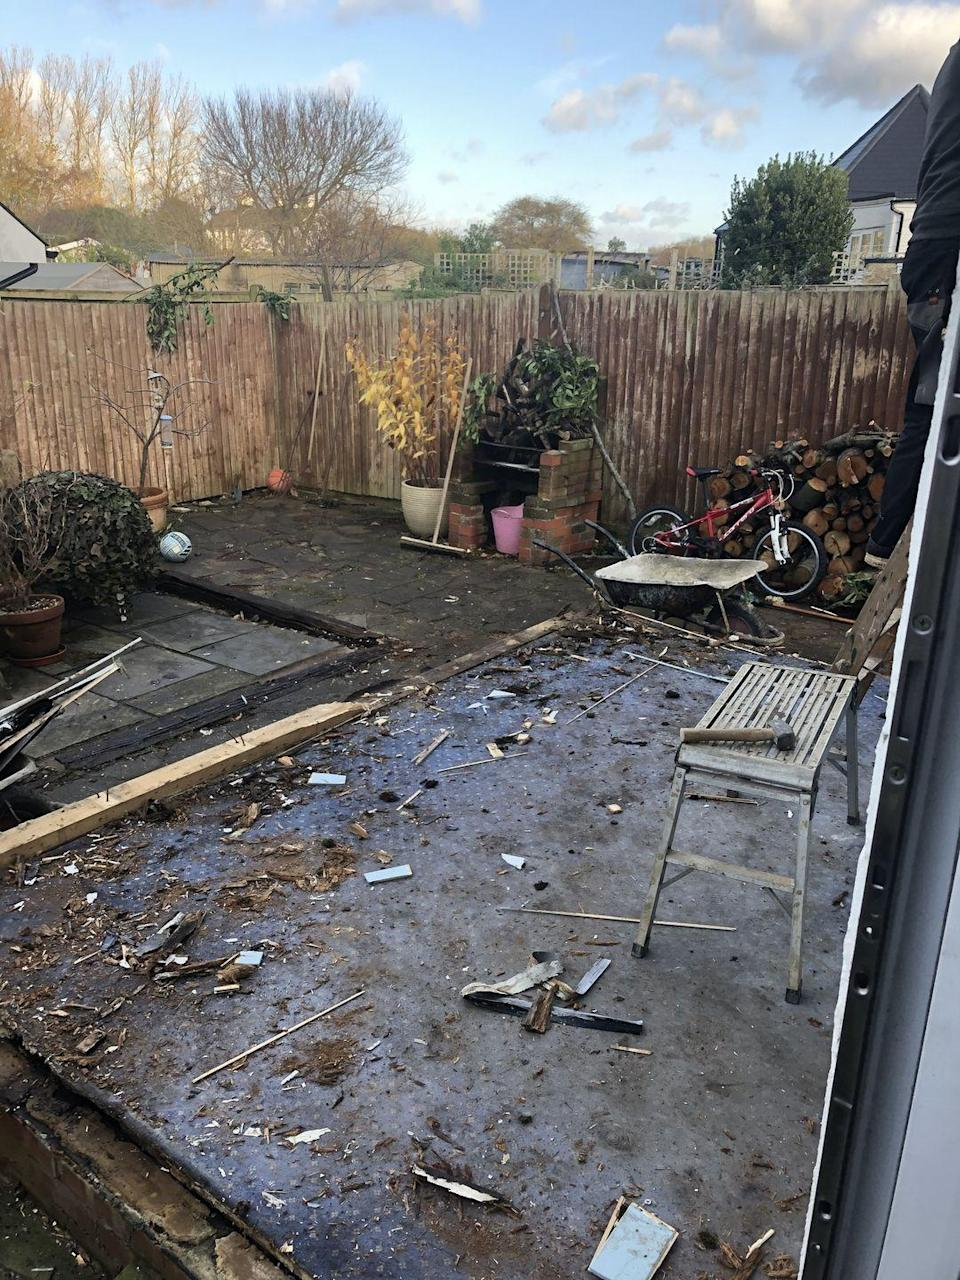 <p>During lockdown, David transformed his bleak and unloved garden corner into a stylish patio that's perfect for relaxing. Take a look at the after shot...<br></p>